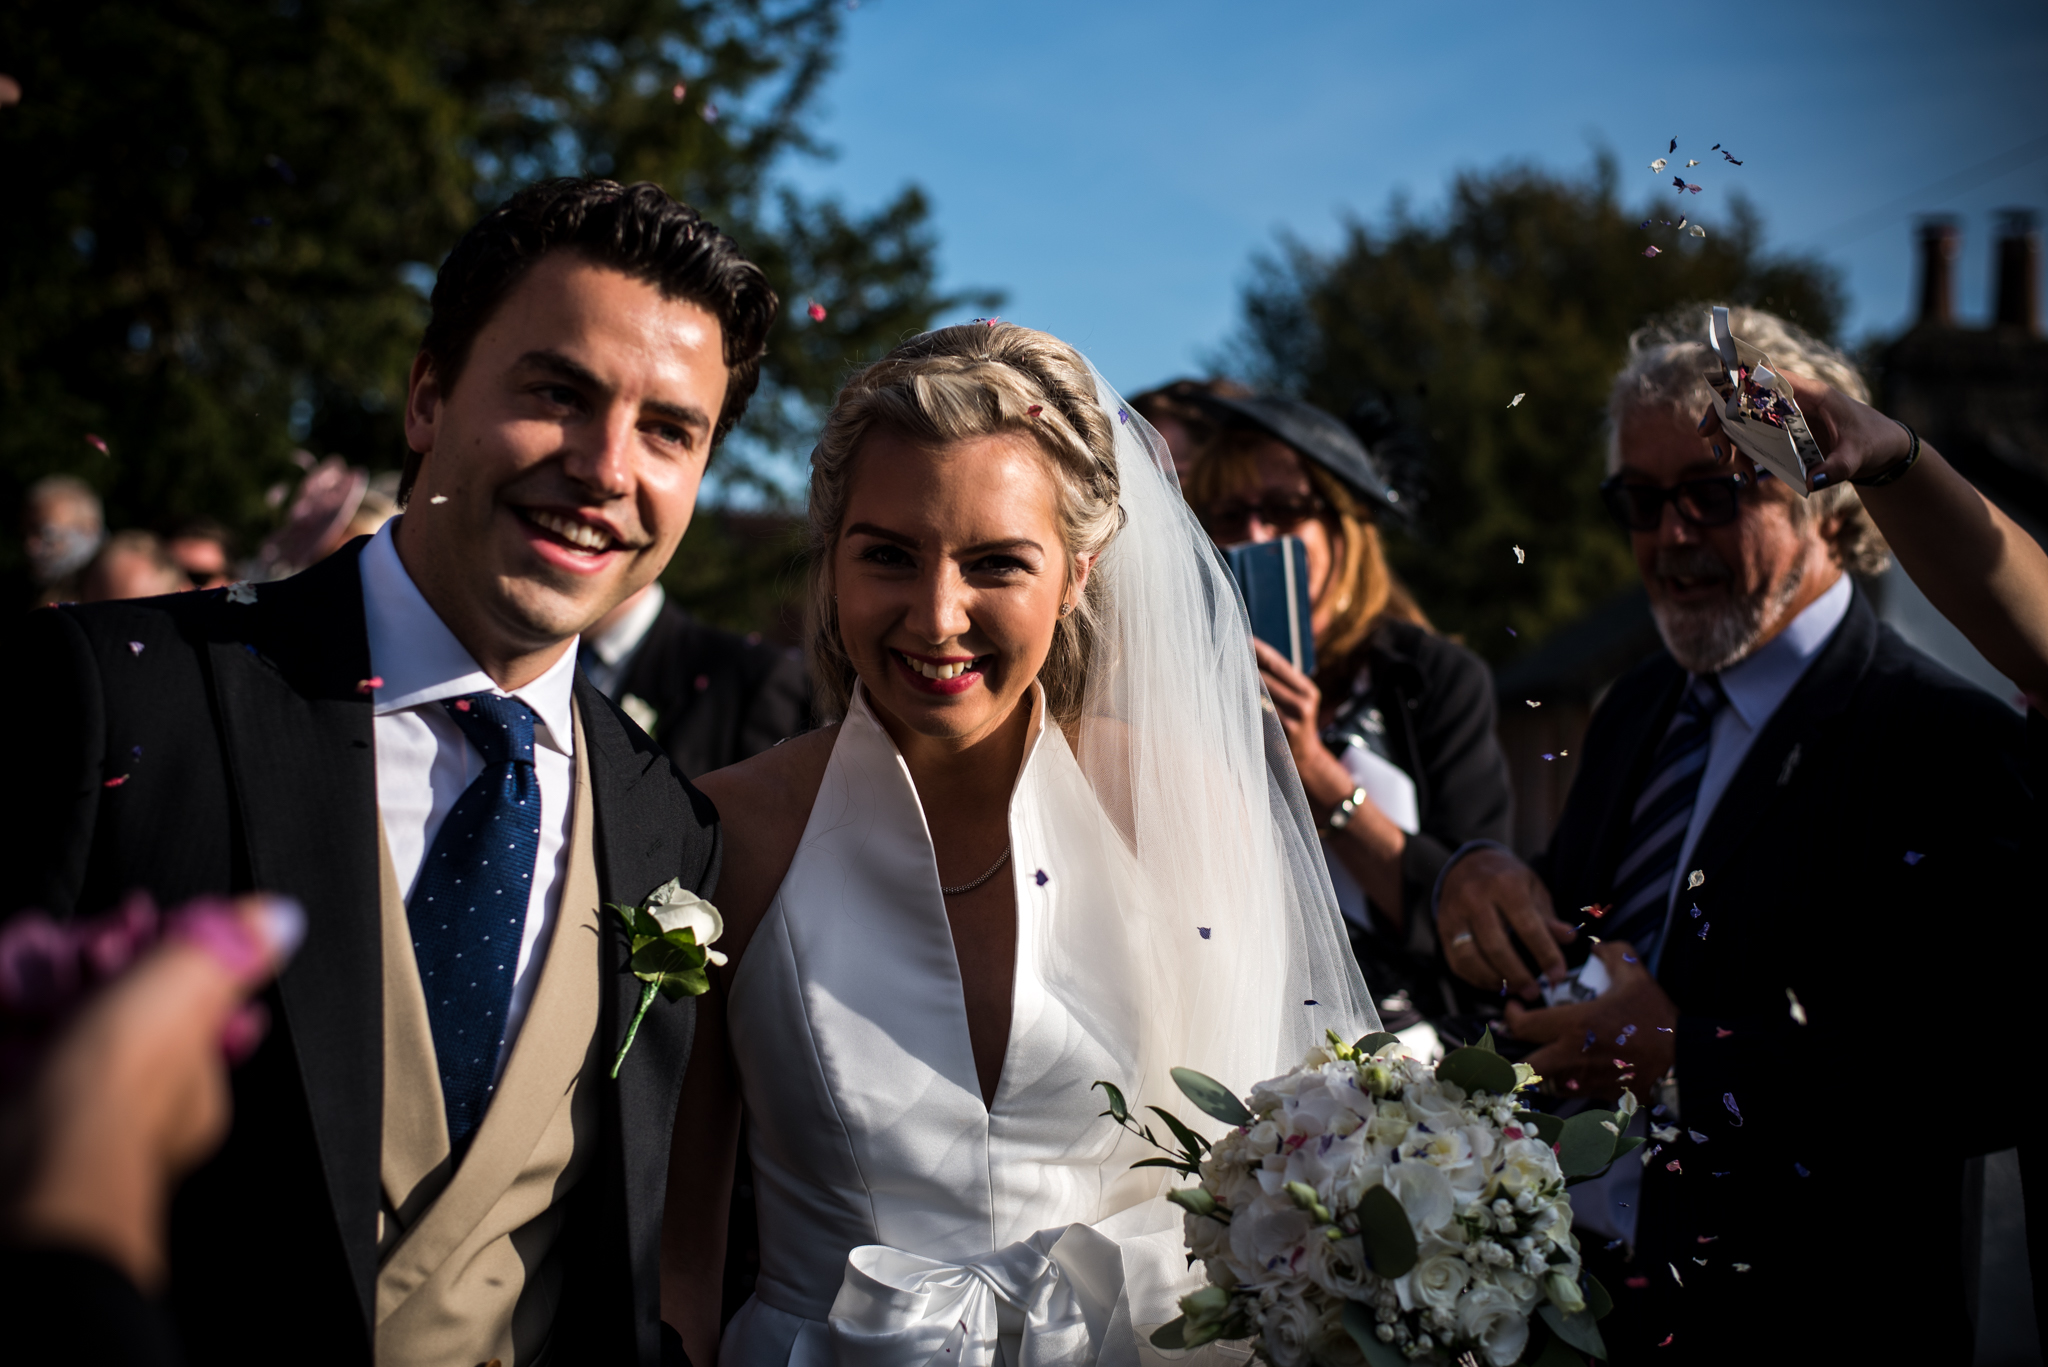 Emily Black Photography, wedding photographer based in Winchester, Hampshire